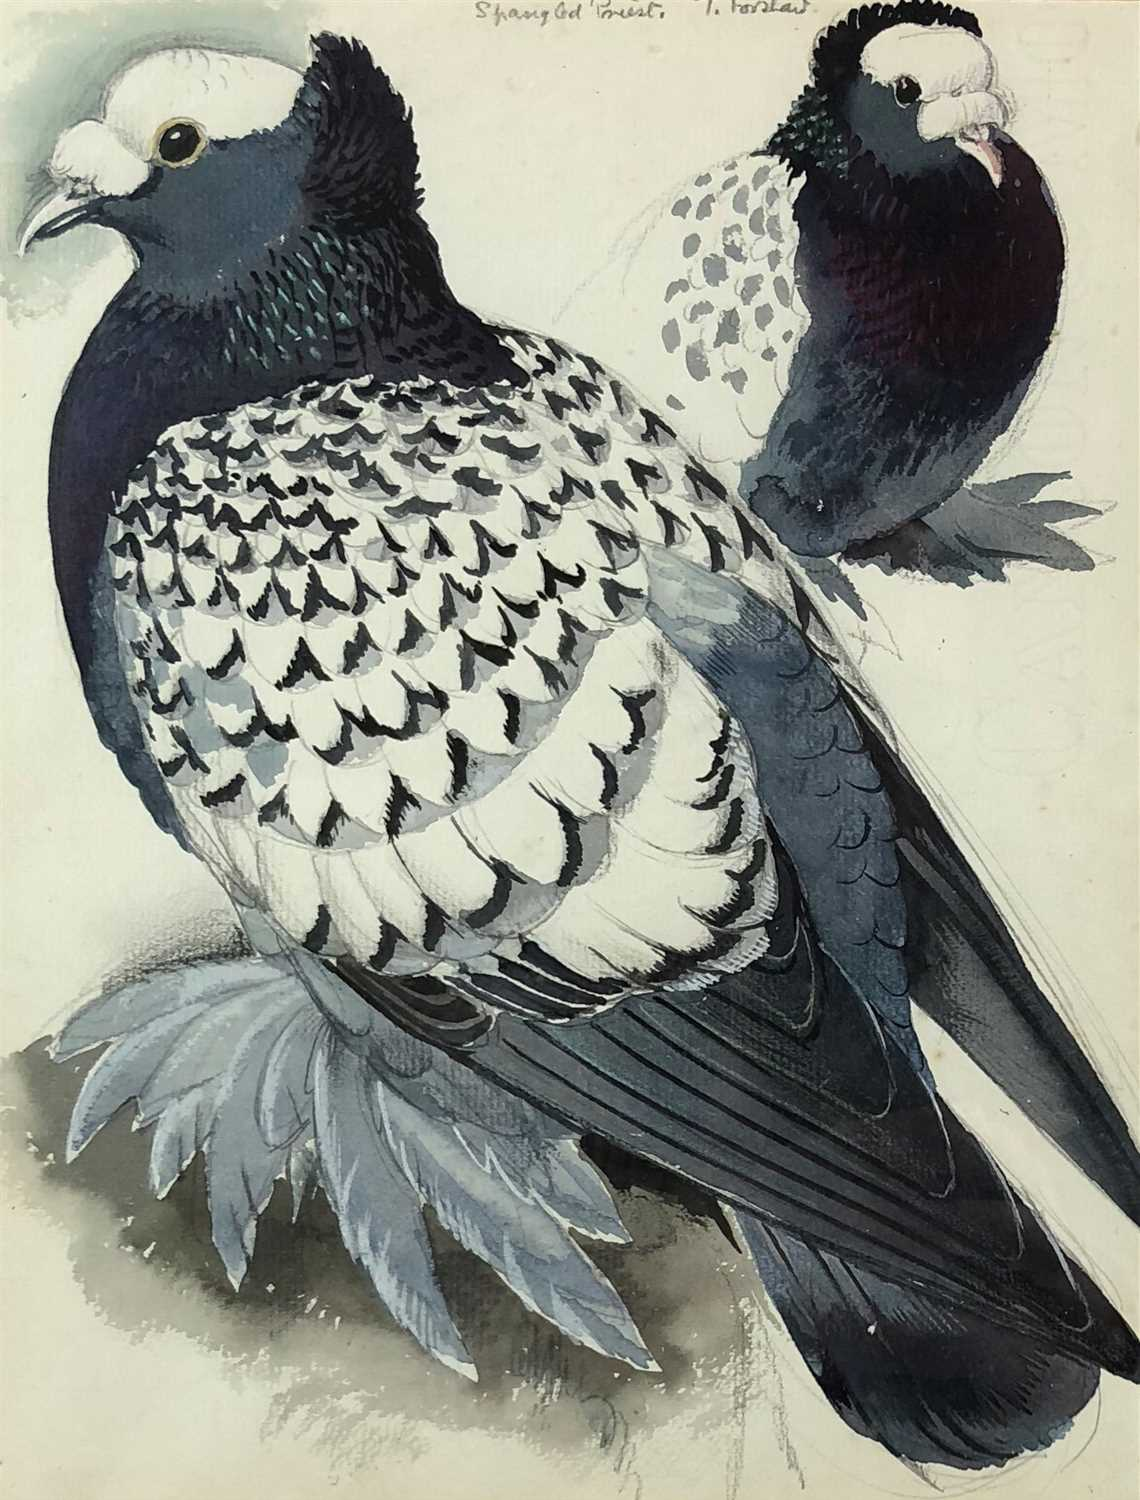 Lot 5 - Charles Frederick Tunnicliffe (1901 - 1979), Spangled Priest